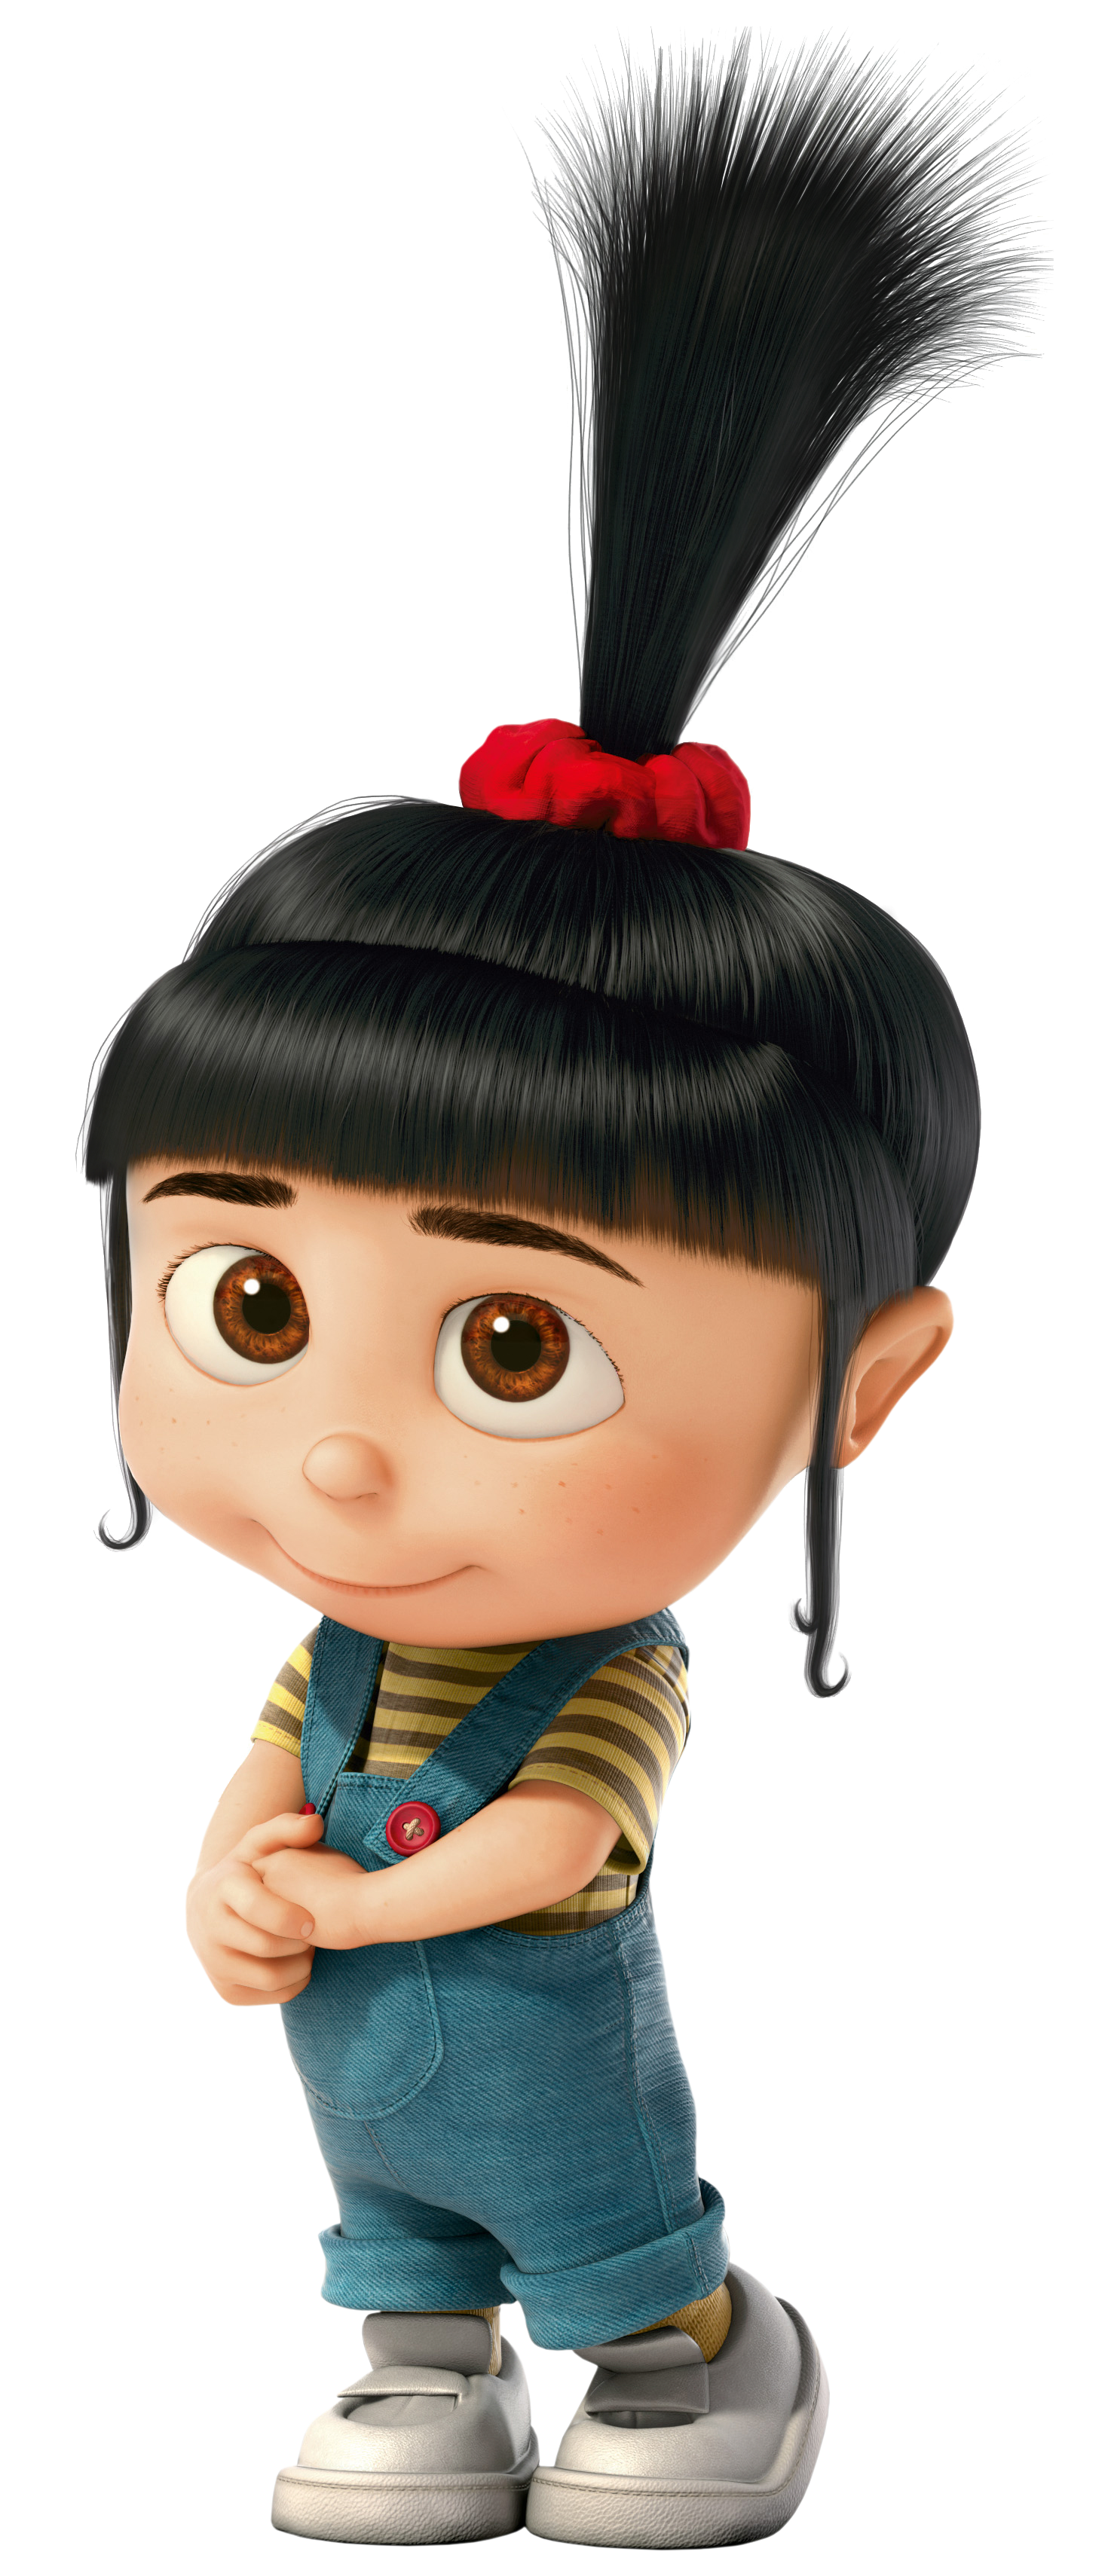 Me Minion Mayhem Despicable Agnes Transparent Minions PNG Image